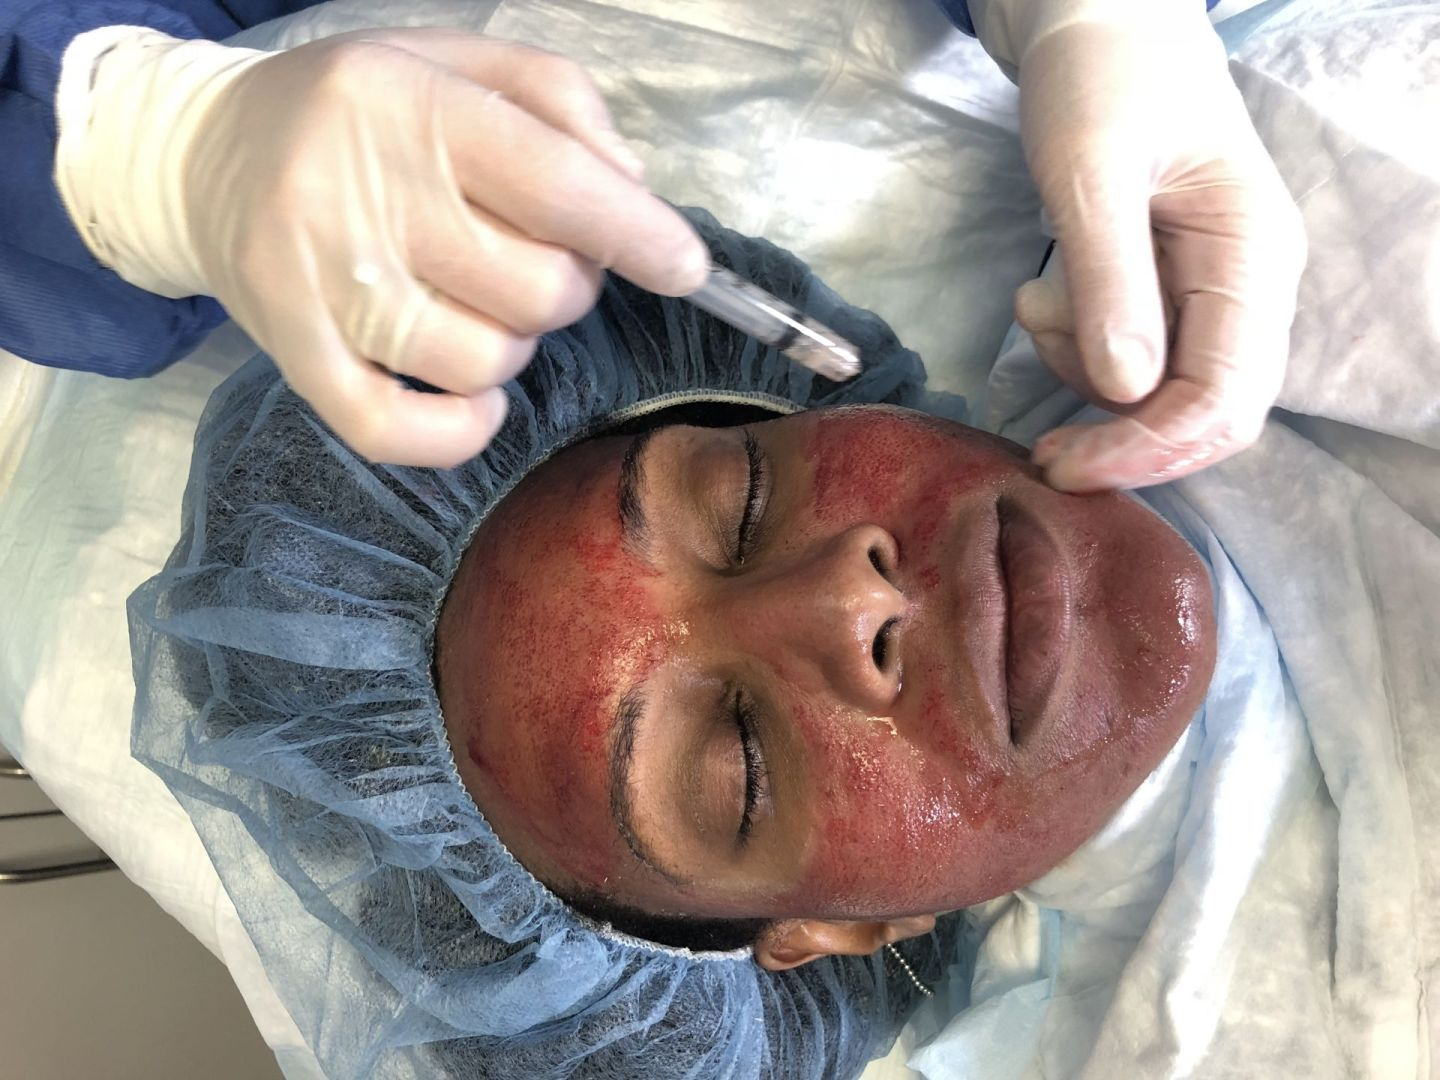 Vampire Facial may sound dangerous and expensive, but it is far from alone in the bizarre when it comes to popular beauty treatments. Check out what's hot.